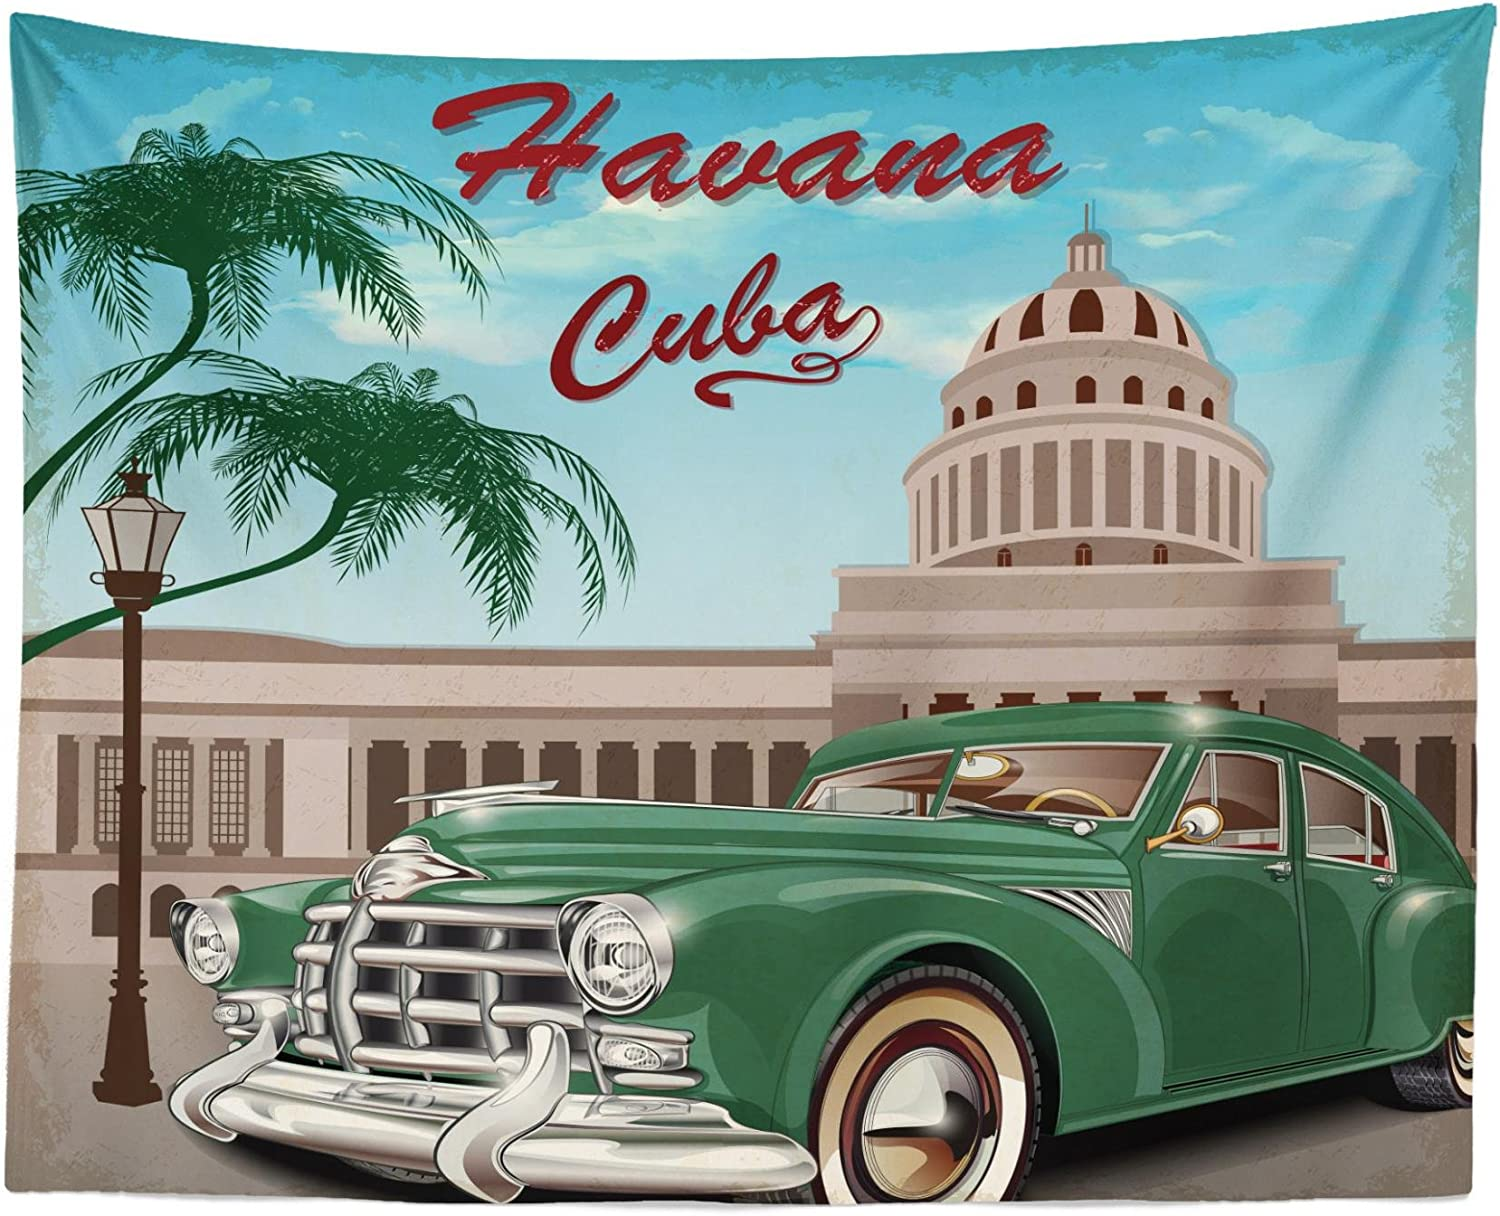 "Lunarable Havana Tapestry, Retro Design of El Capitolio with Nostalgic Car Under Palm Tree, Fabric Wall Hanging Decor for Bedroom Living Room Dorm, 28"" X 23"", Jade Green"